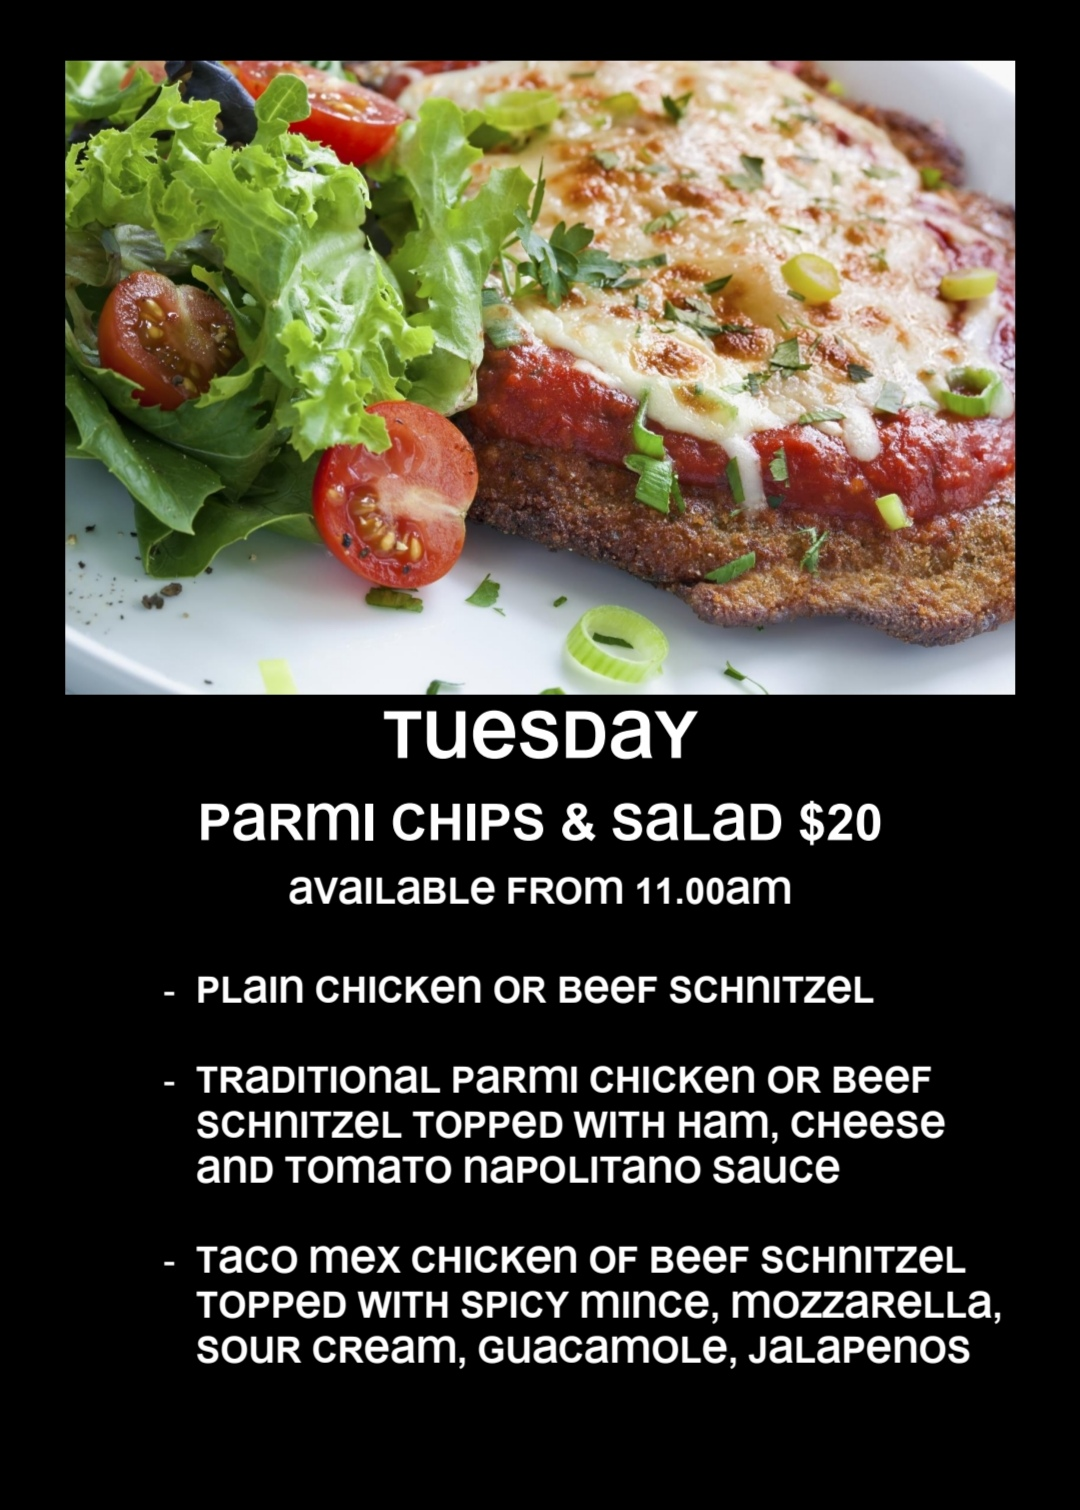 Tuesday Parmi